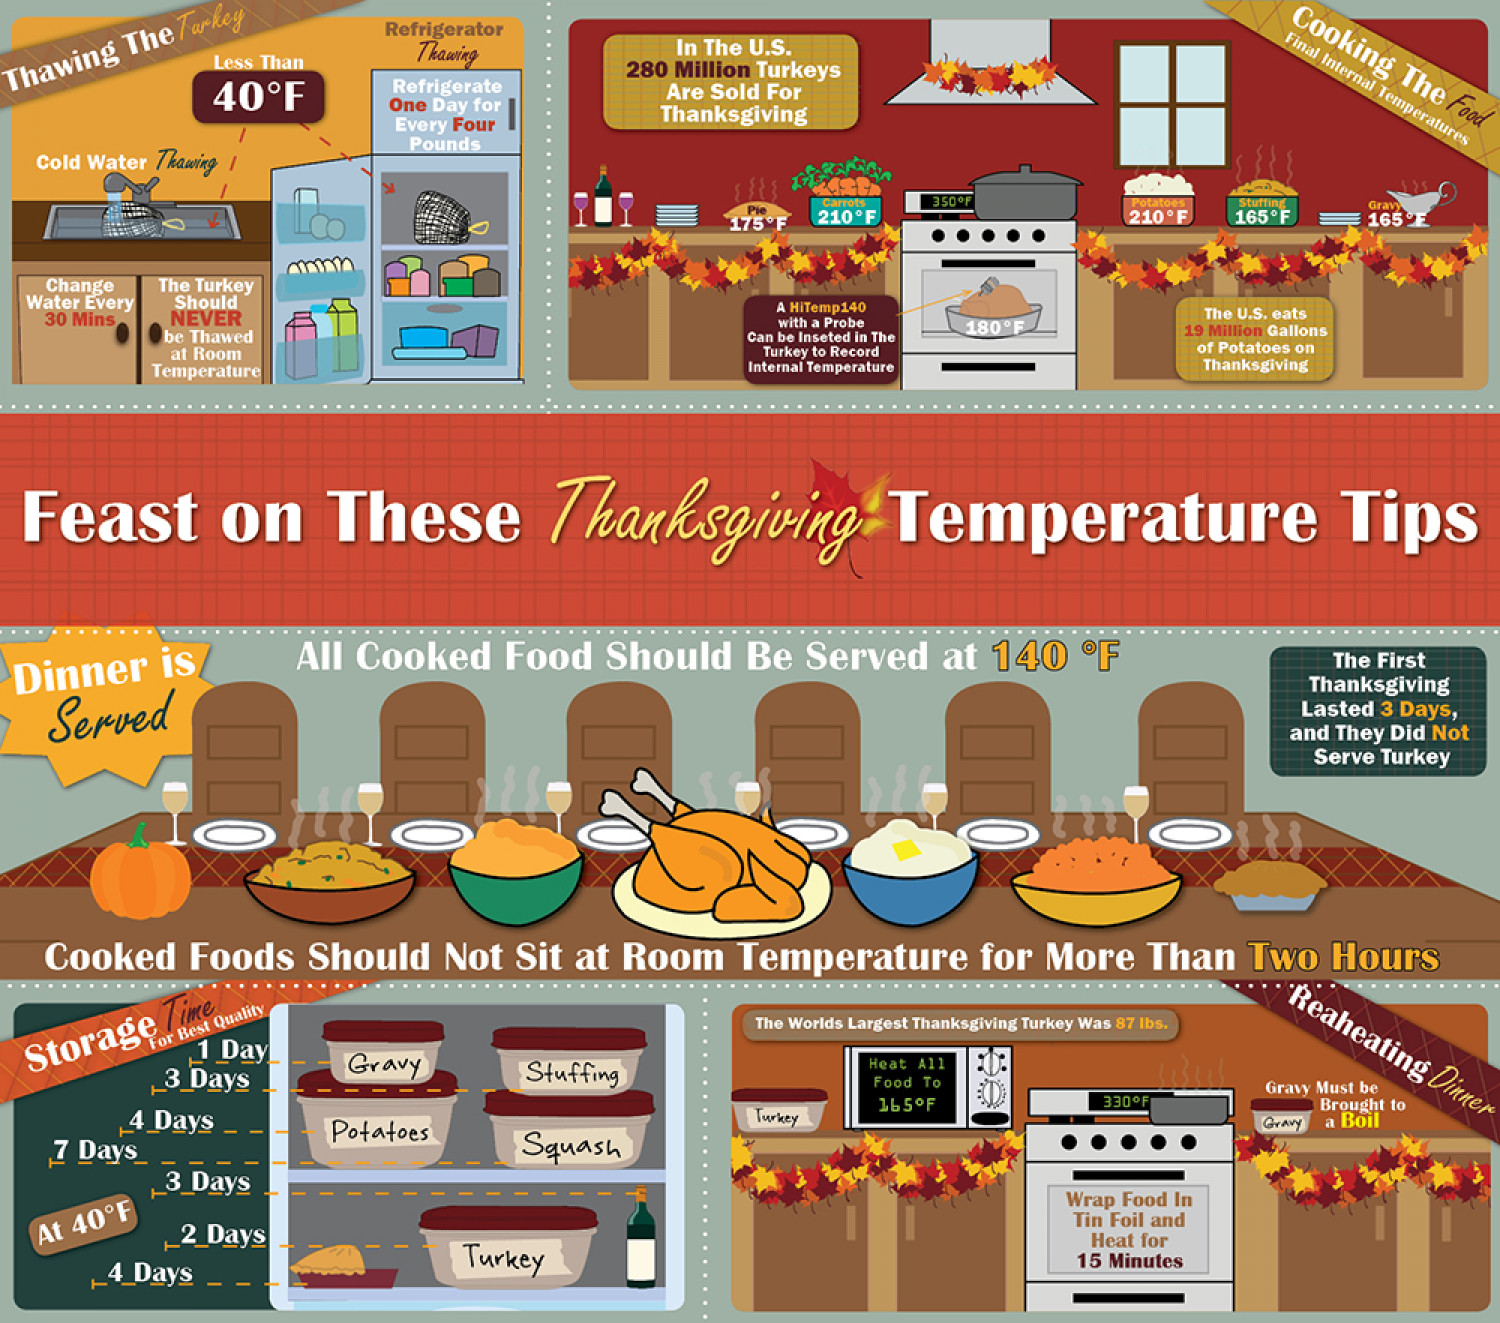 Feast on These Thanksgiving Temperature Tips Infographic